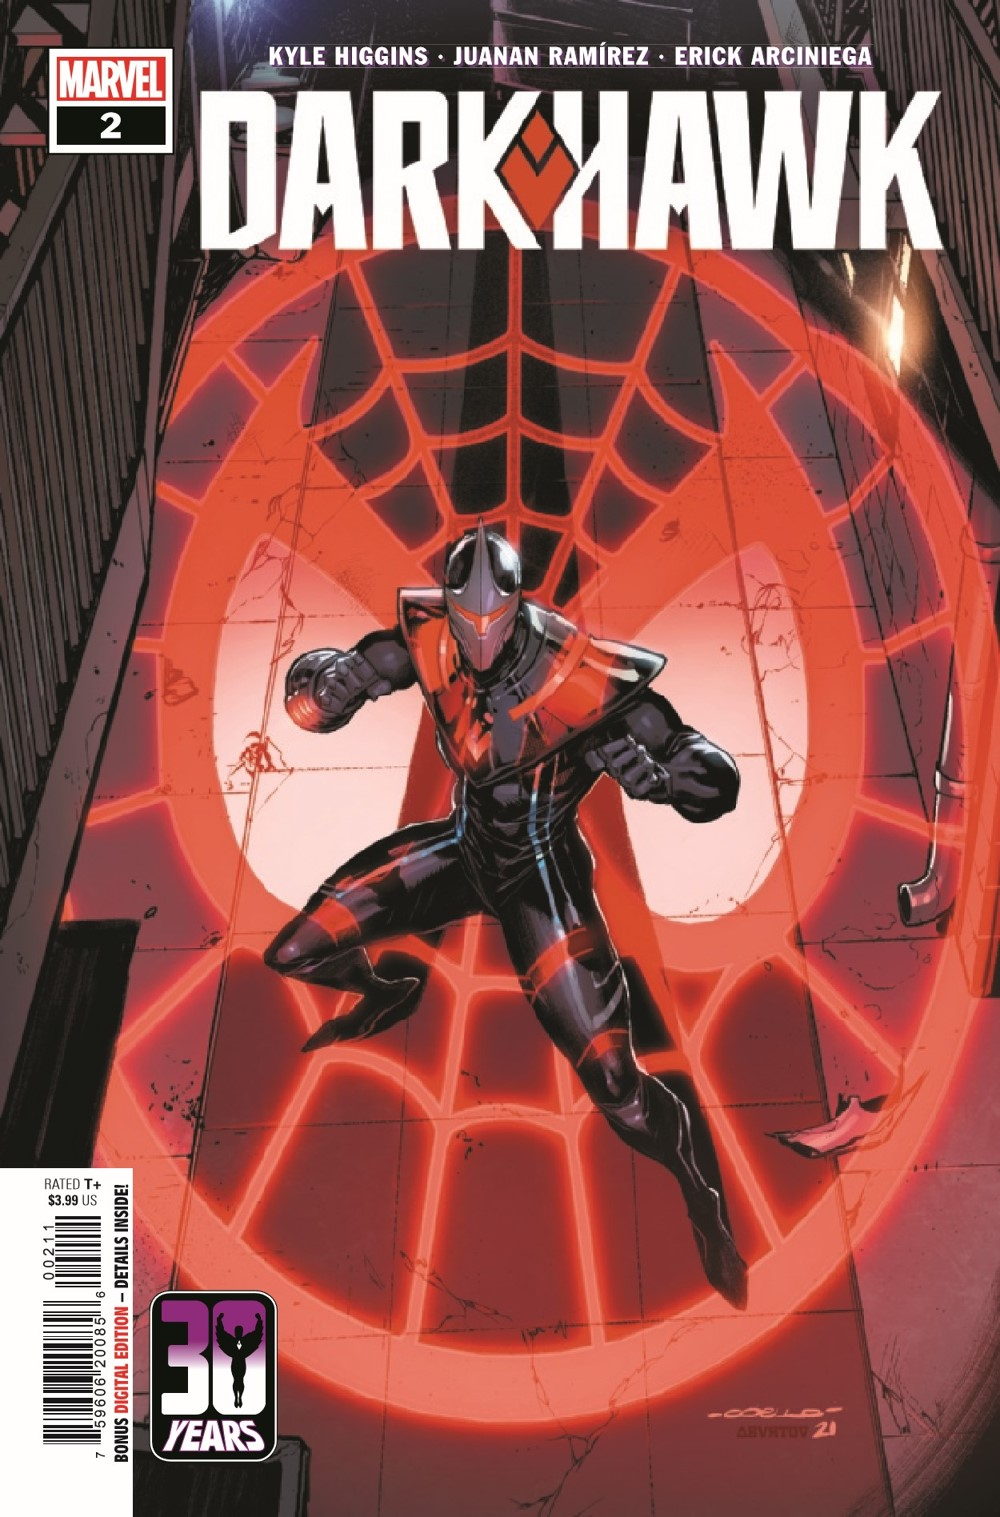 DRKHWK2021002_Preview-1 ComicList Previews: DARKHAWK #2 (OF 5)